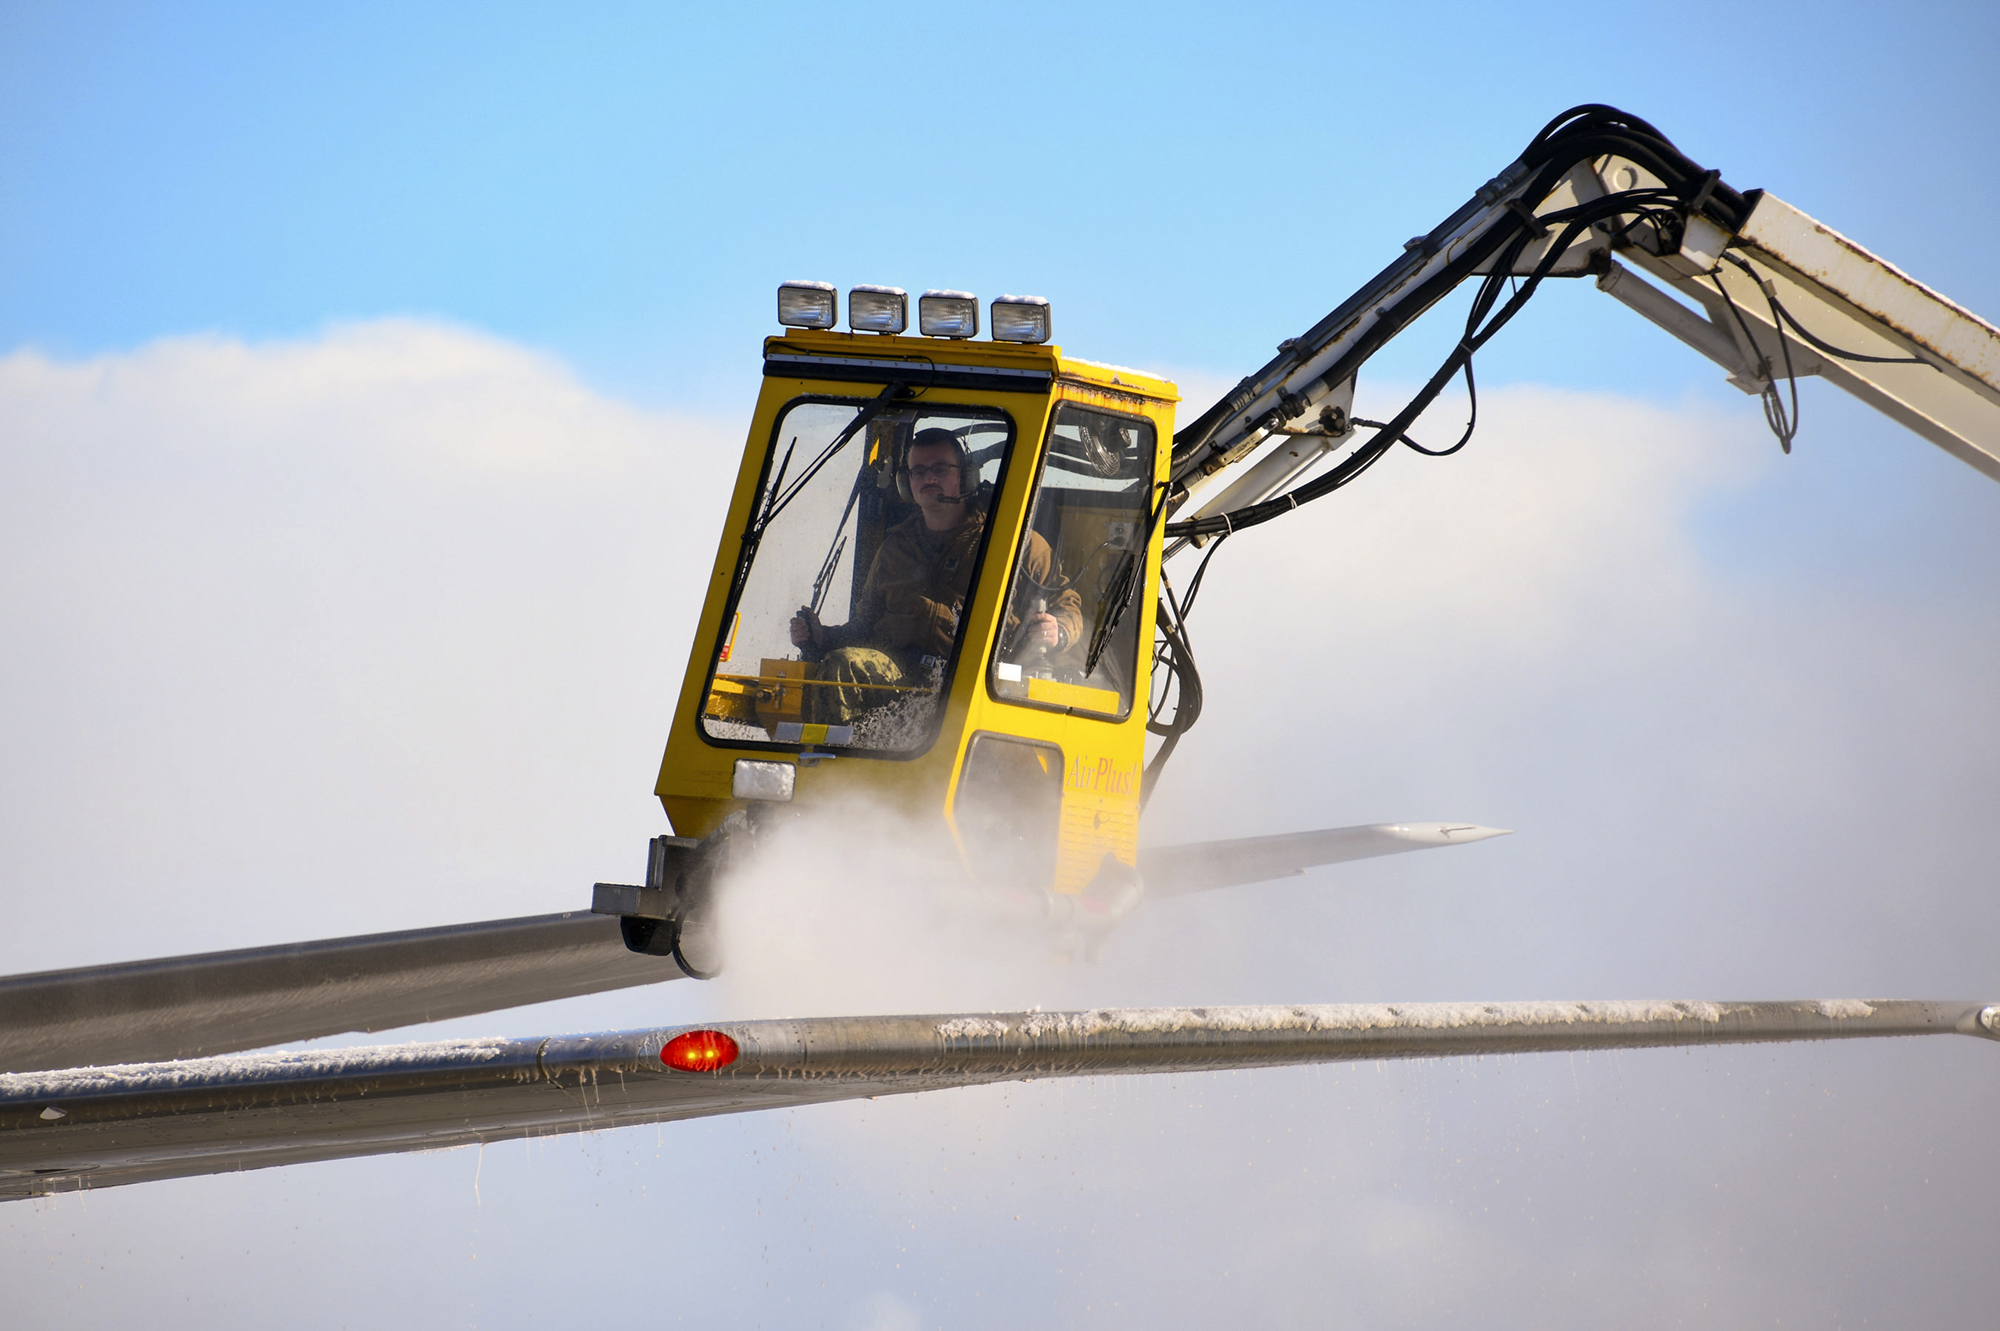 Aviation Machinist's Mate 1st Class Andrew Sutton operates a de-icing truck to remove snow and ice from the wing of a P-8A Poseidon on Nov. 10, 2020, at Misawa Air Base. (Mass Communication Specialist Seaman Benjamin Ringers/Navy)